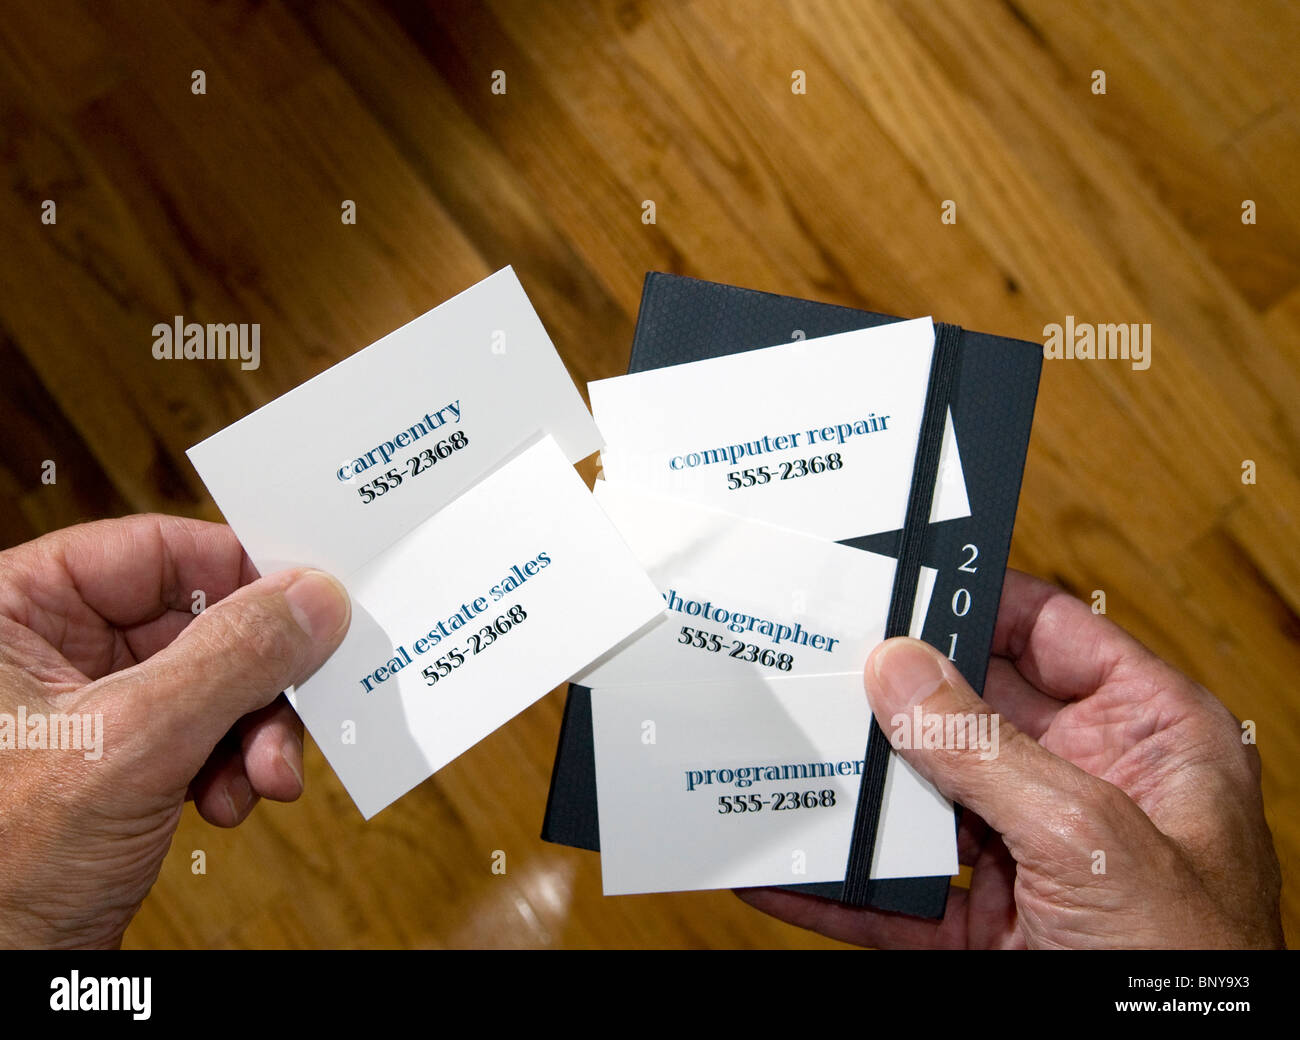 Calling cards telephone stock photos calling cards telephone stock close up of hands holding multiple business cards with varied professions stock image reheart Gallery